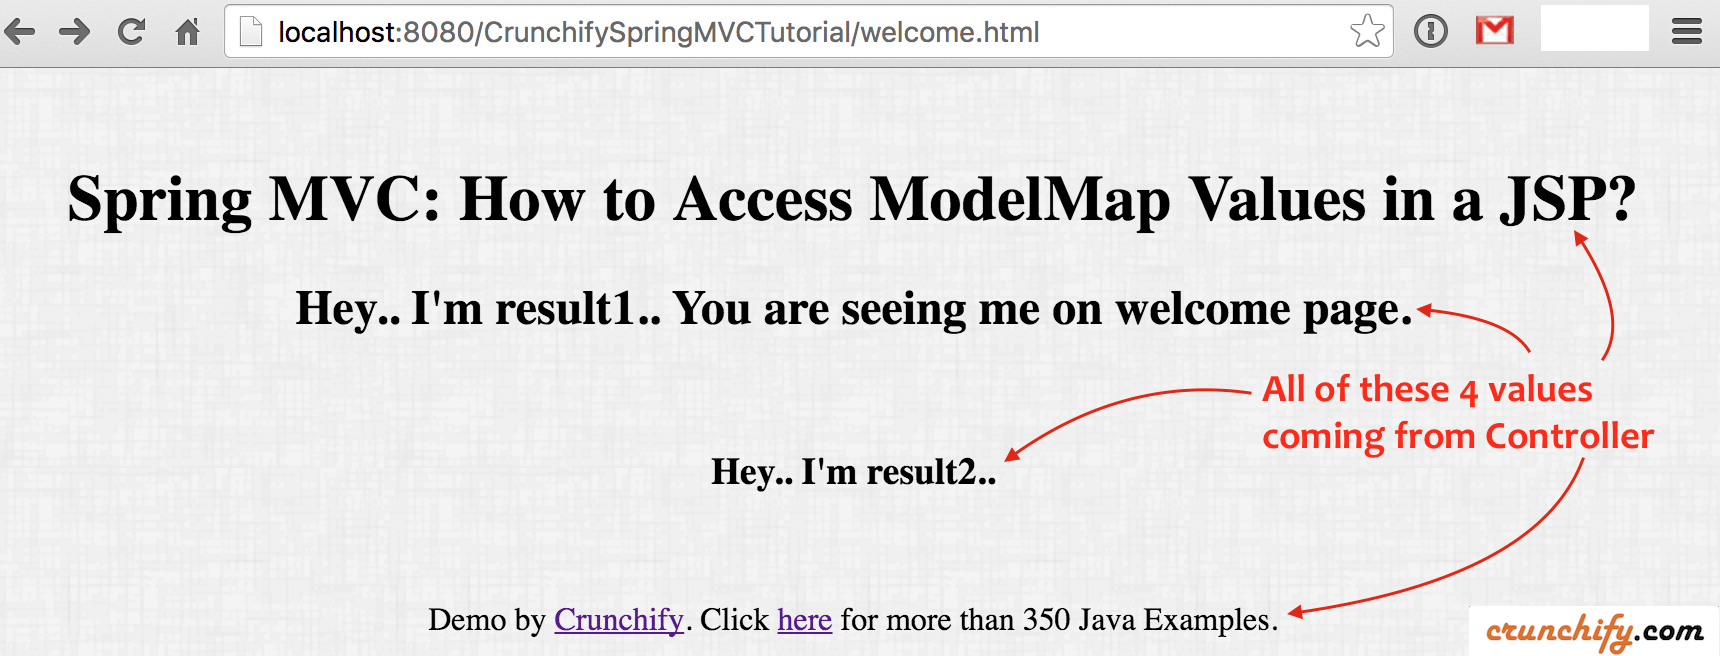 In Spring MVC how to access modelmap values in JSP